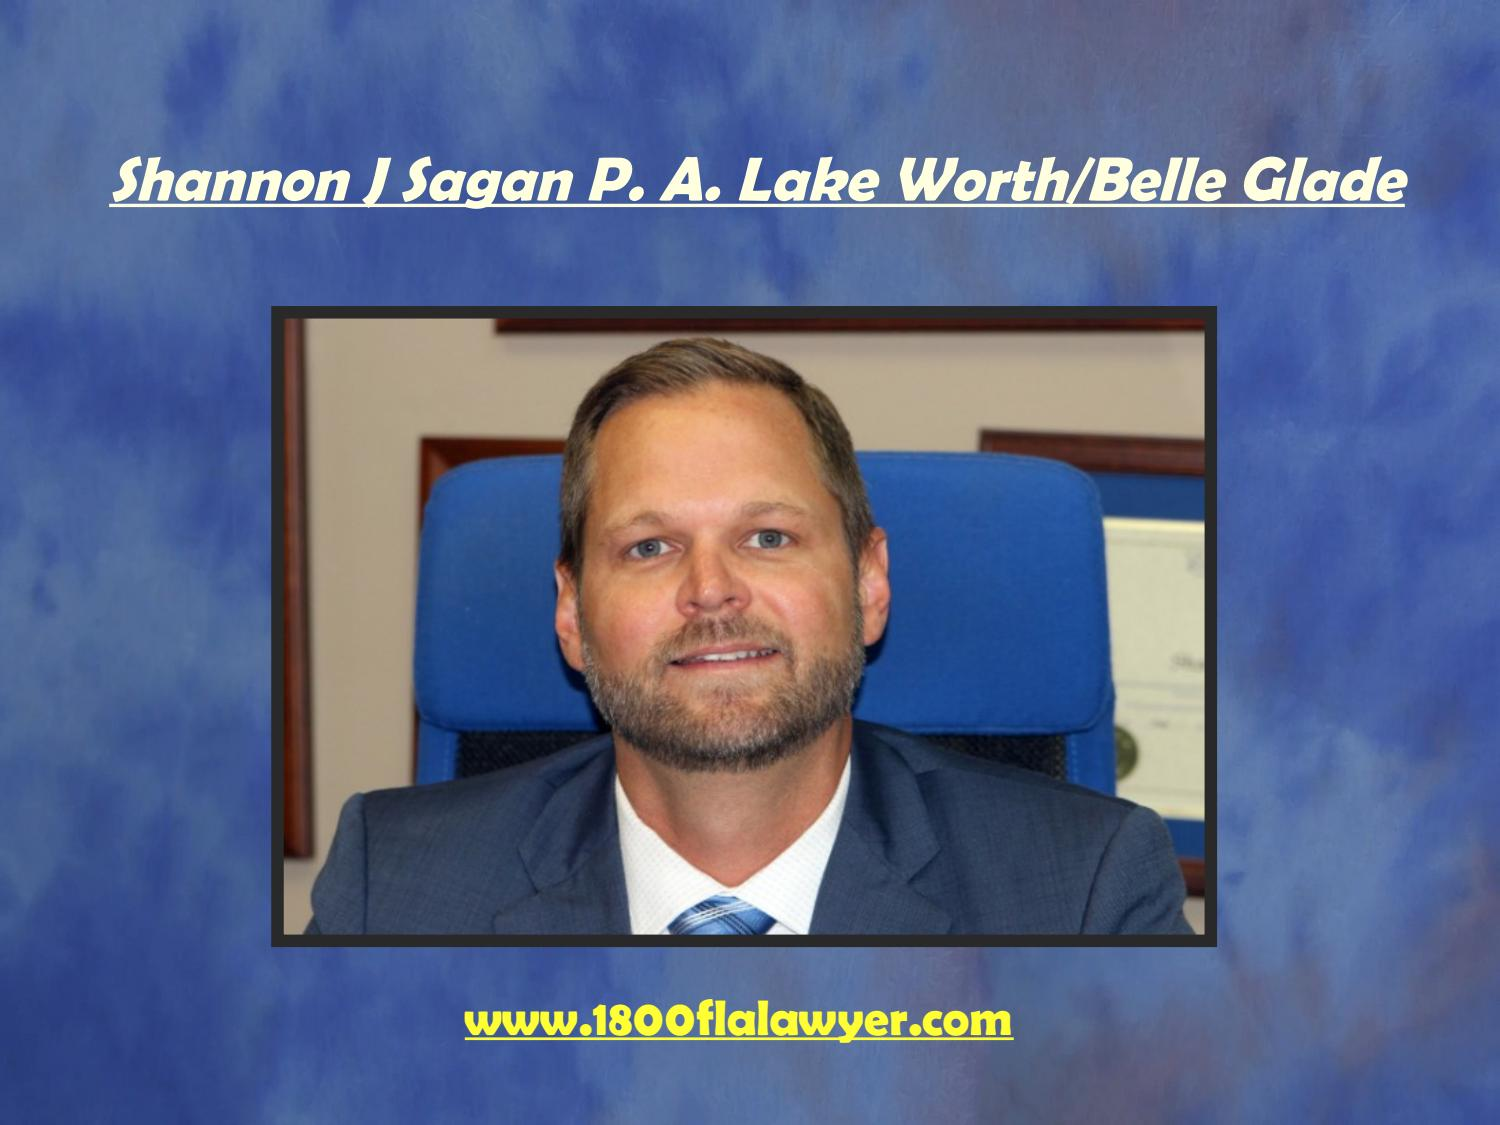 Lake Worth/Belle Glade Personal Injury Lawyer Shannon J  Sagan by